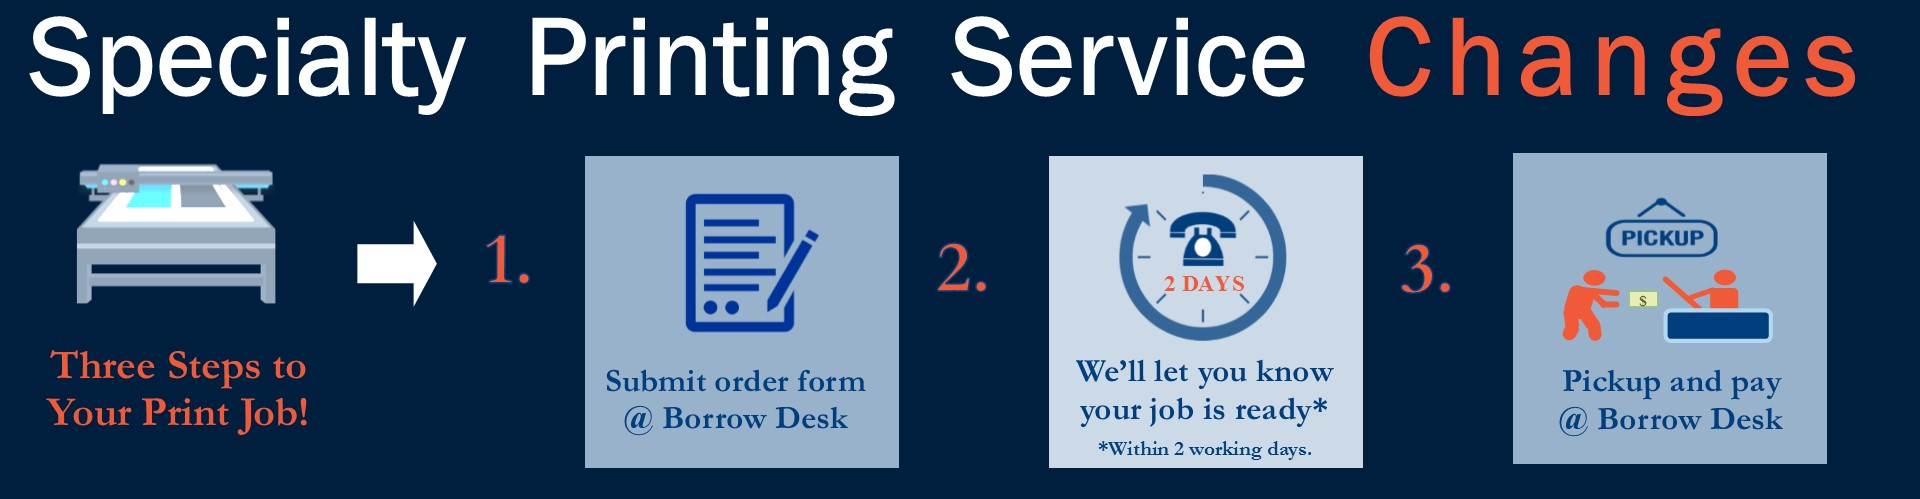 Specialty Printing Changes: Submit Order Form